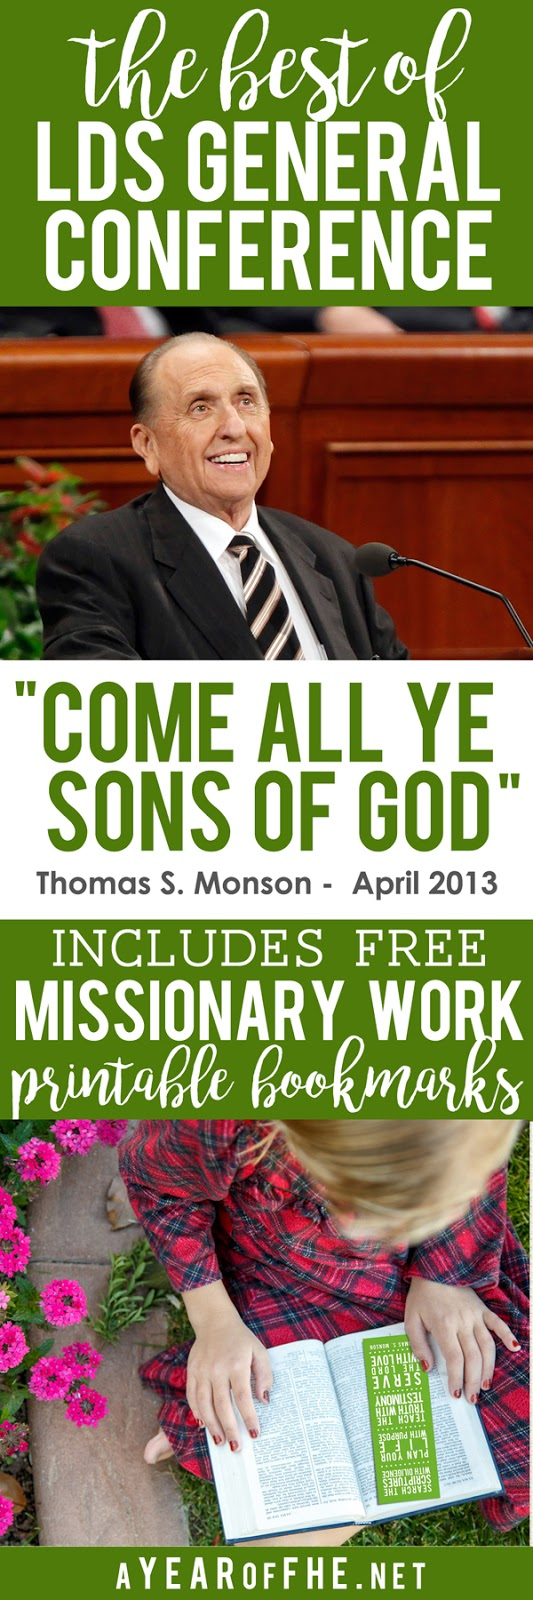 A Year of FHE // Check out this recap of a fabulous 2013 General Conference talk on Missionary Work by Pres. Monson and grab some FREE printable bookmarks! #lds #missionaries #printable